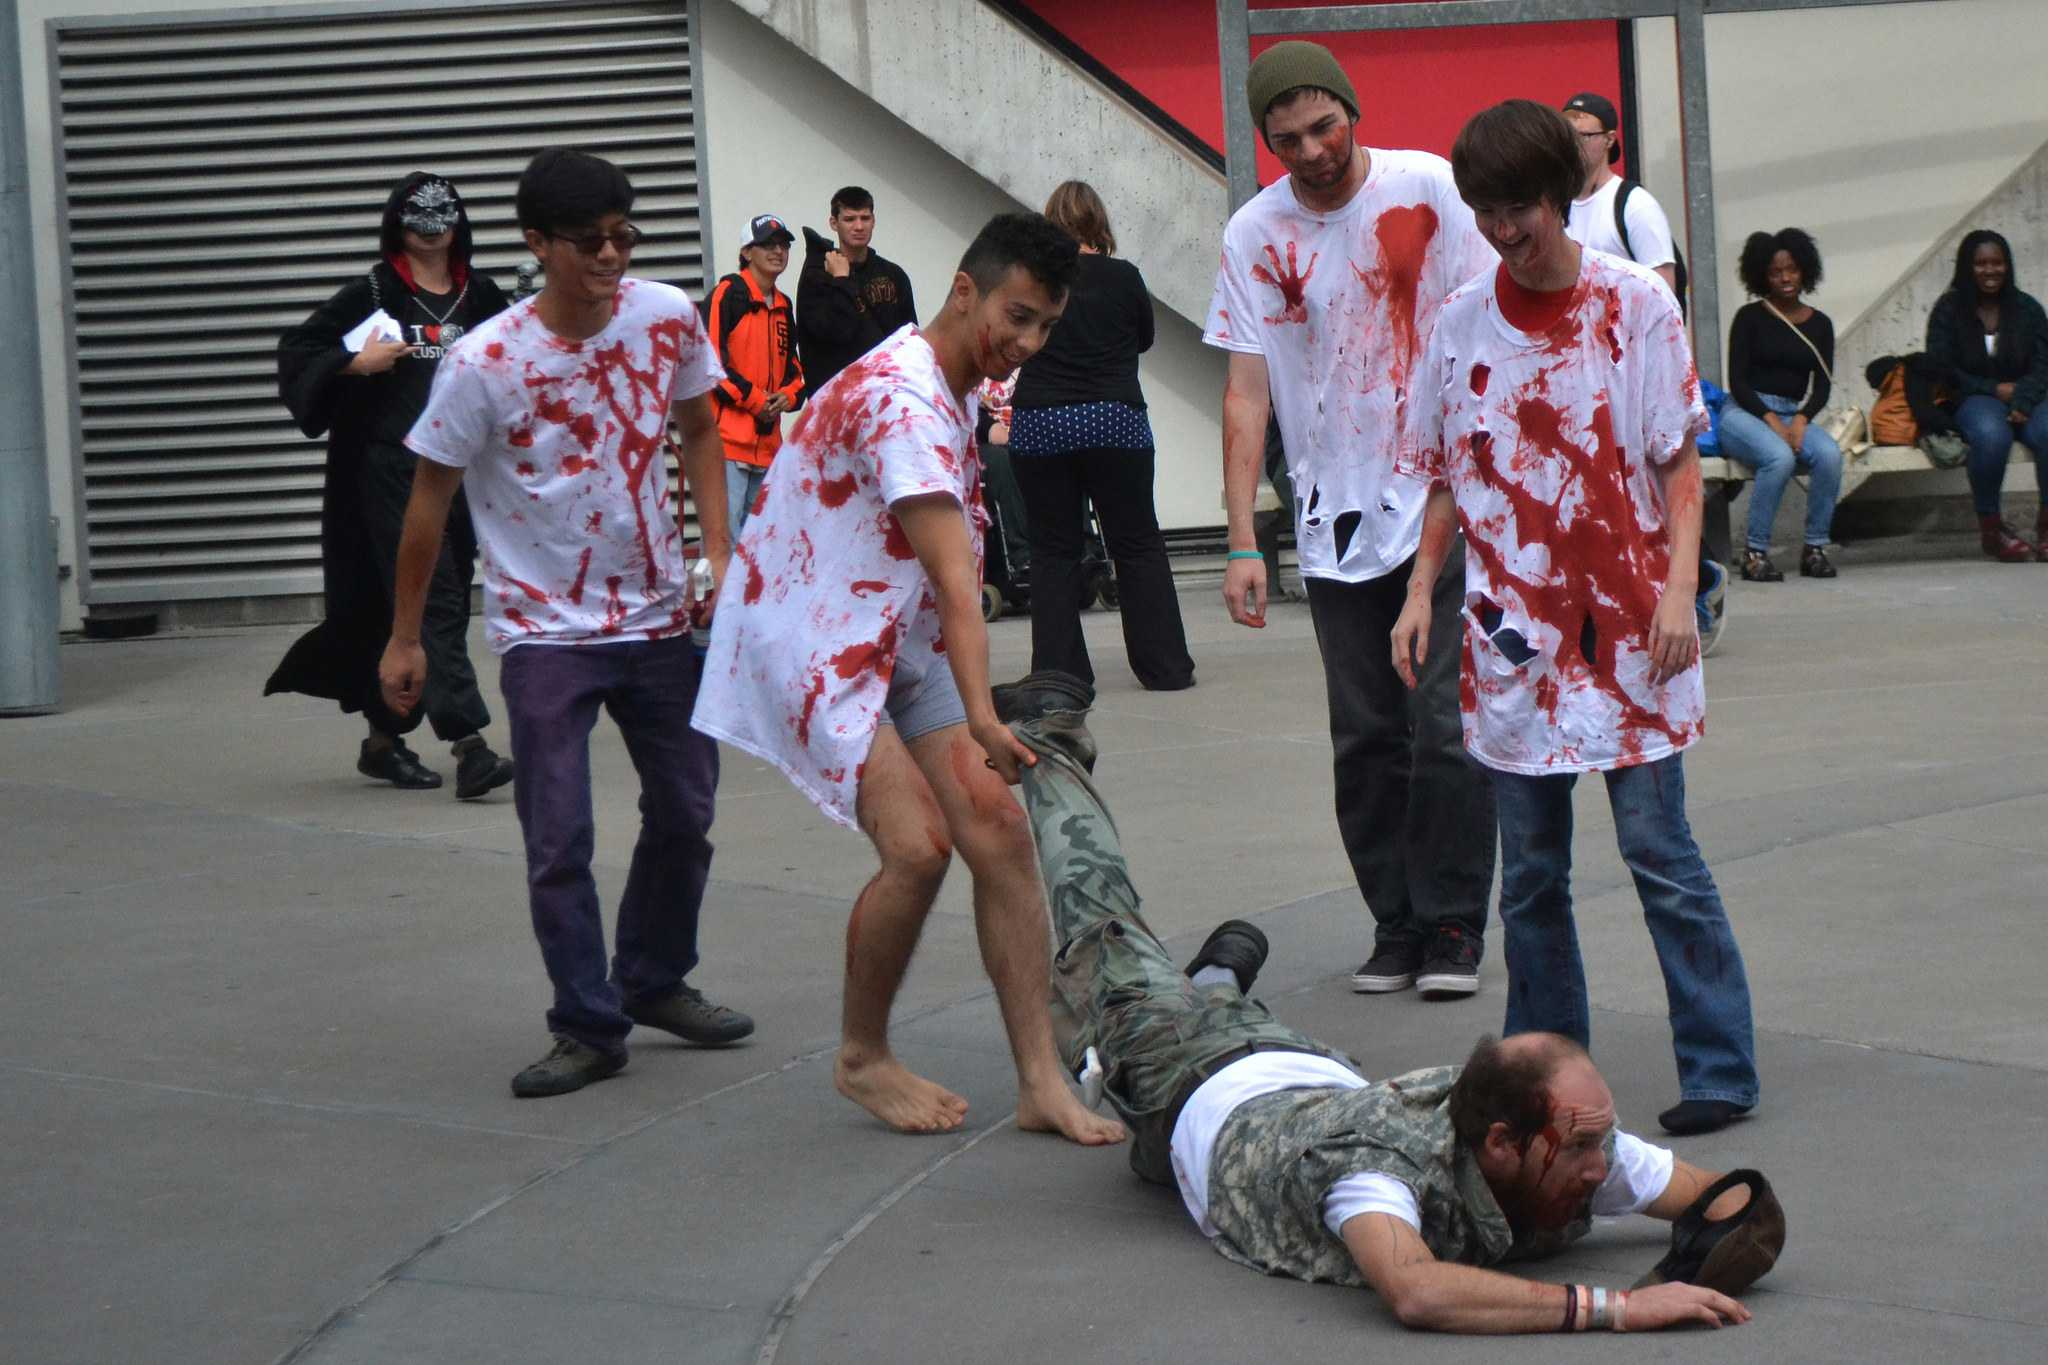 Annual Great California Shakeout and Zombie Nation team up for earthquake awareness